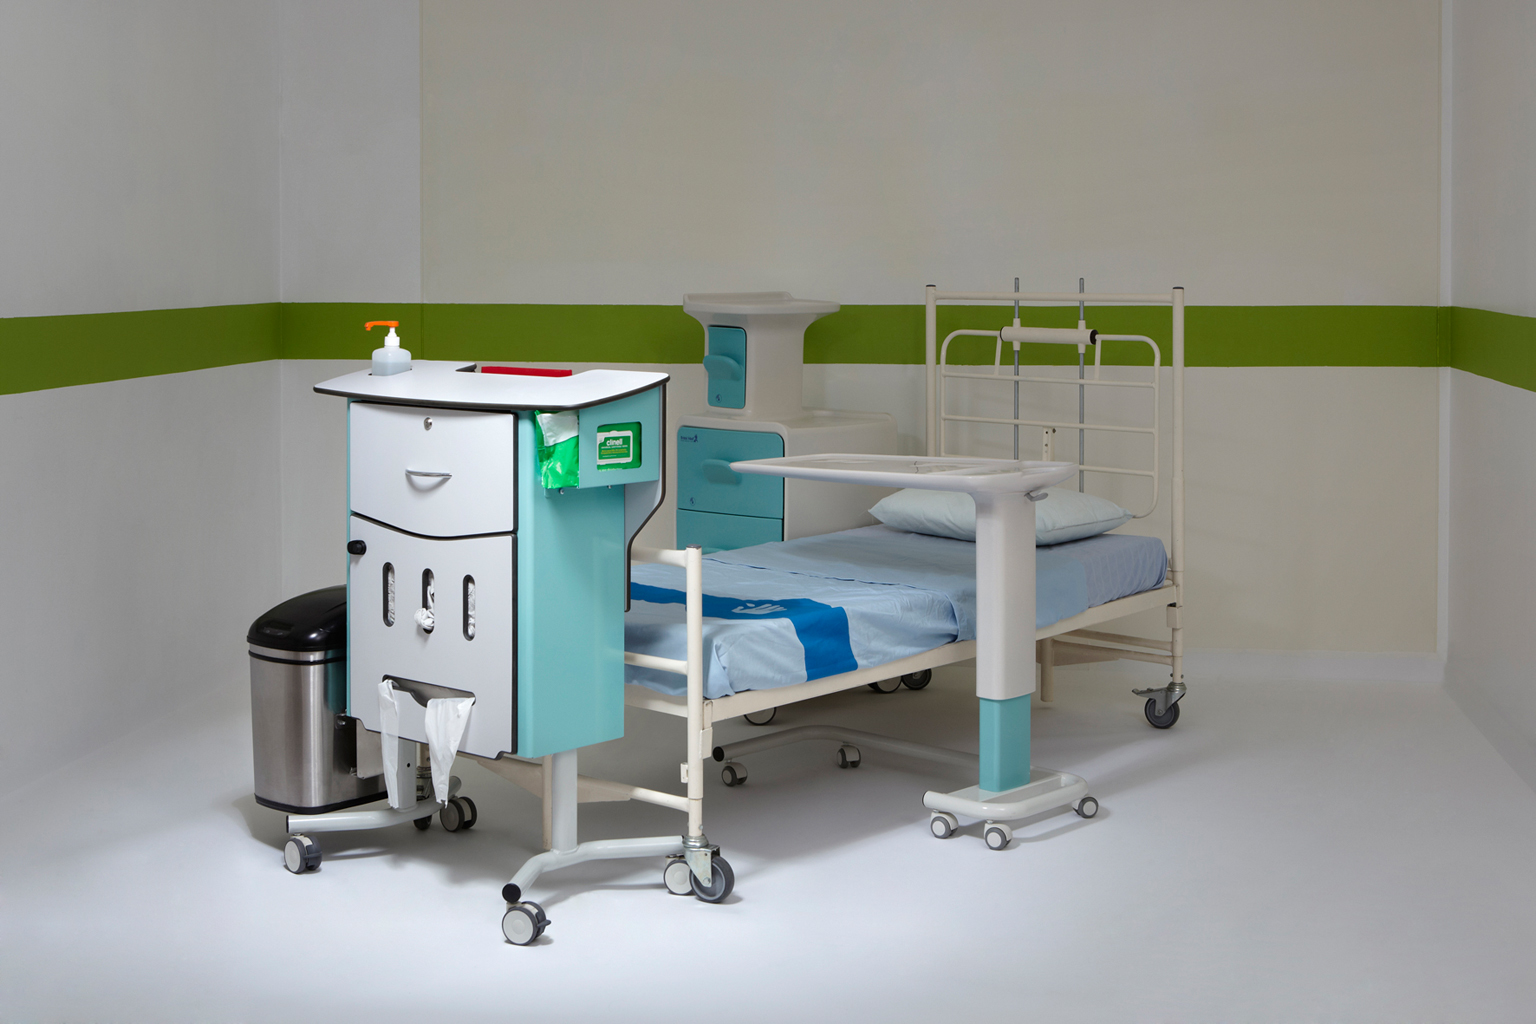 The NHS has been a regular client of the HHCD. An all-in-one unit called the Carestation was designed to house equipment for bedside patient care as part of Grace Davey's research project into reducing medical error. Senior associate: Jonathan West